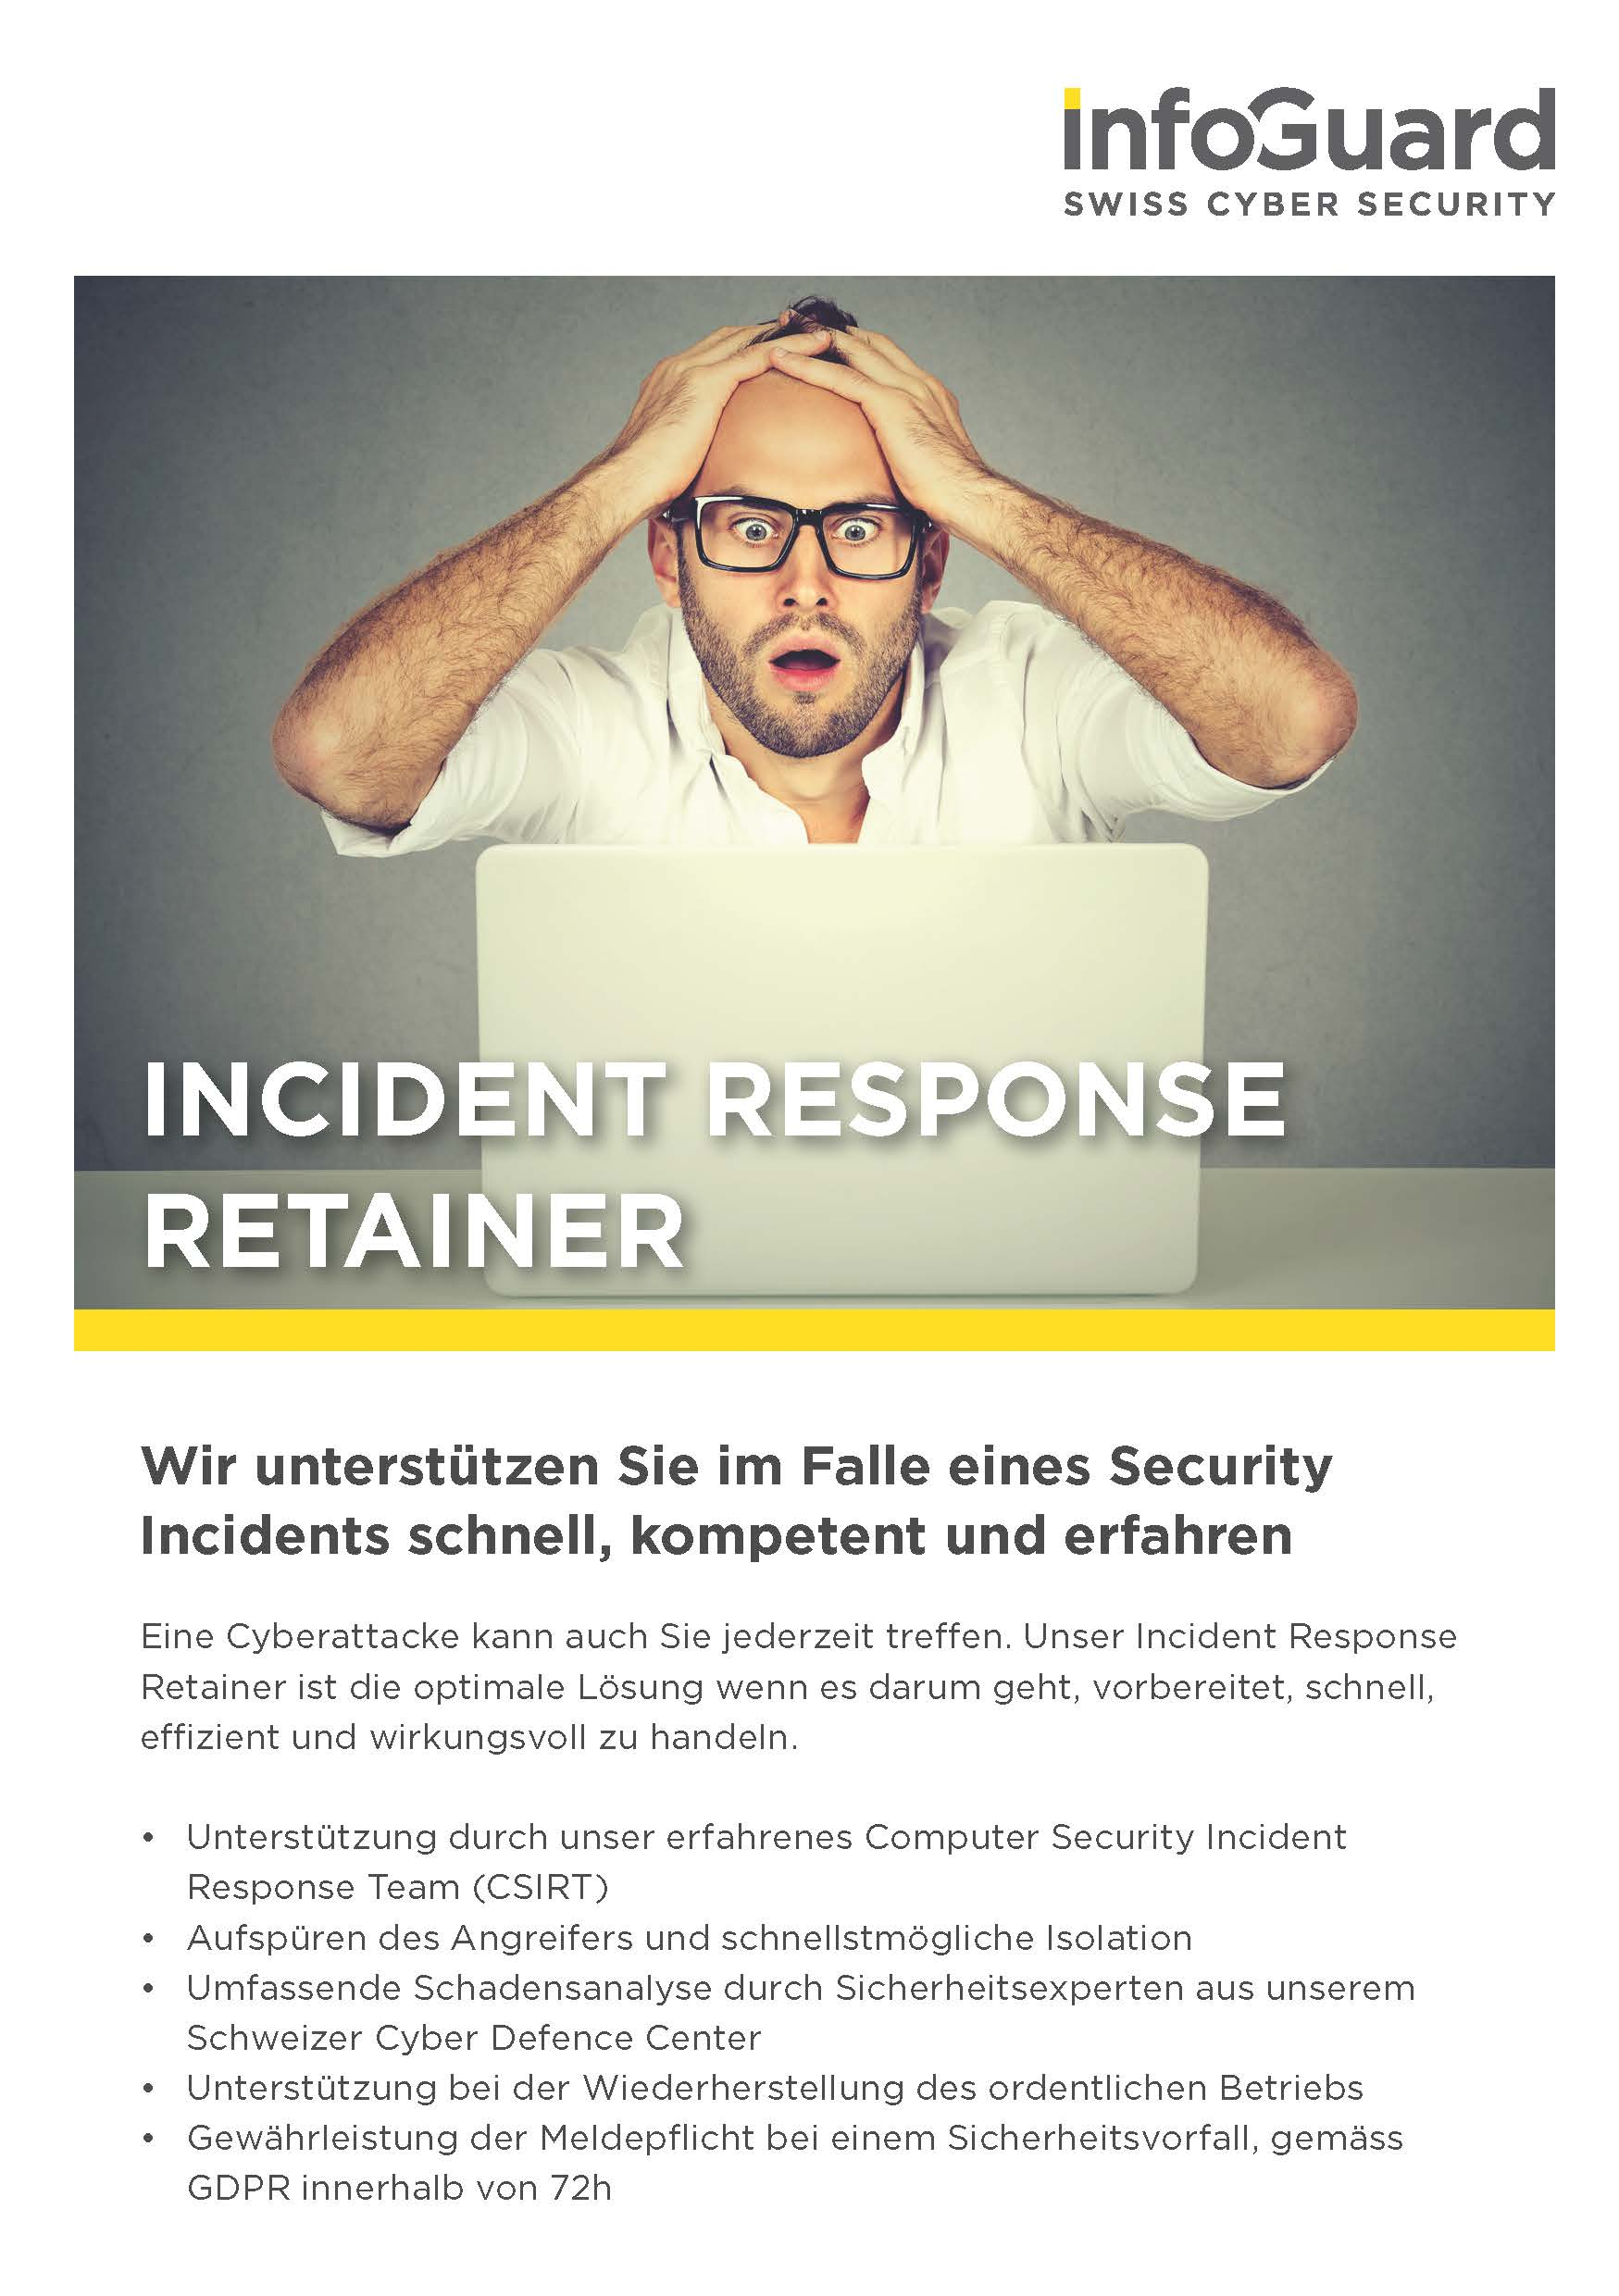 infoguard-incident-response-retainer